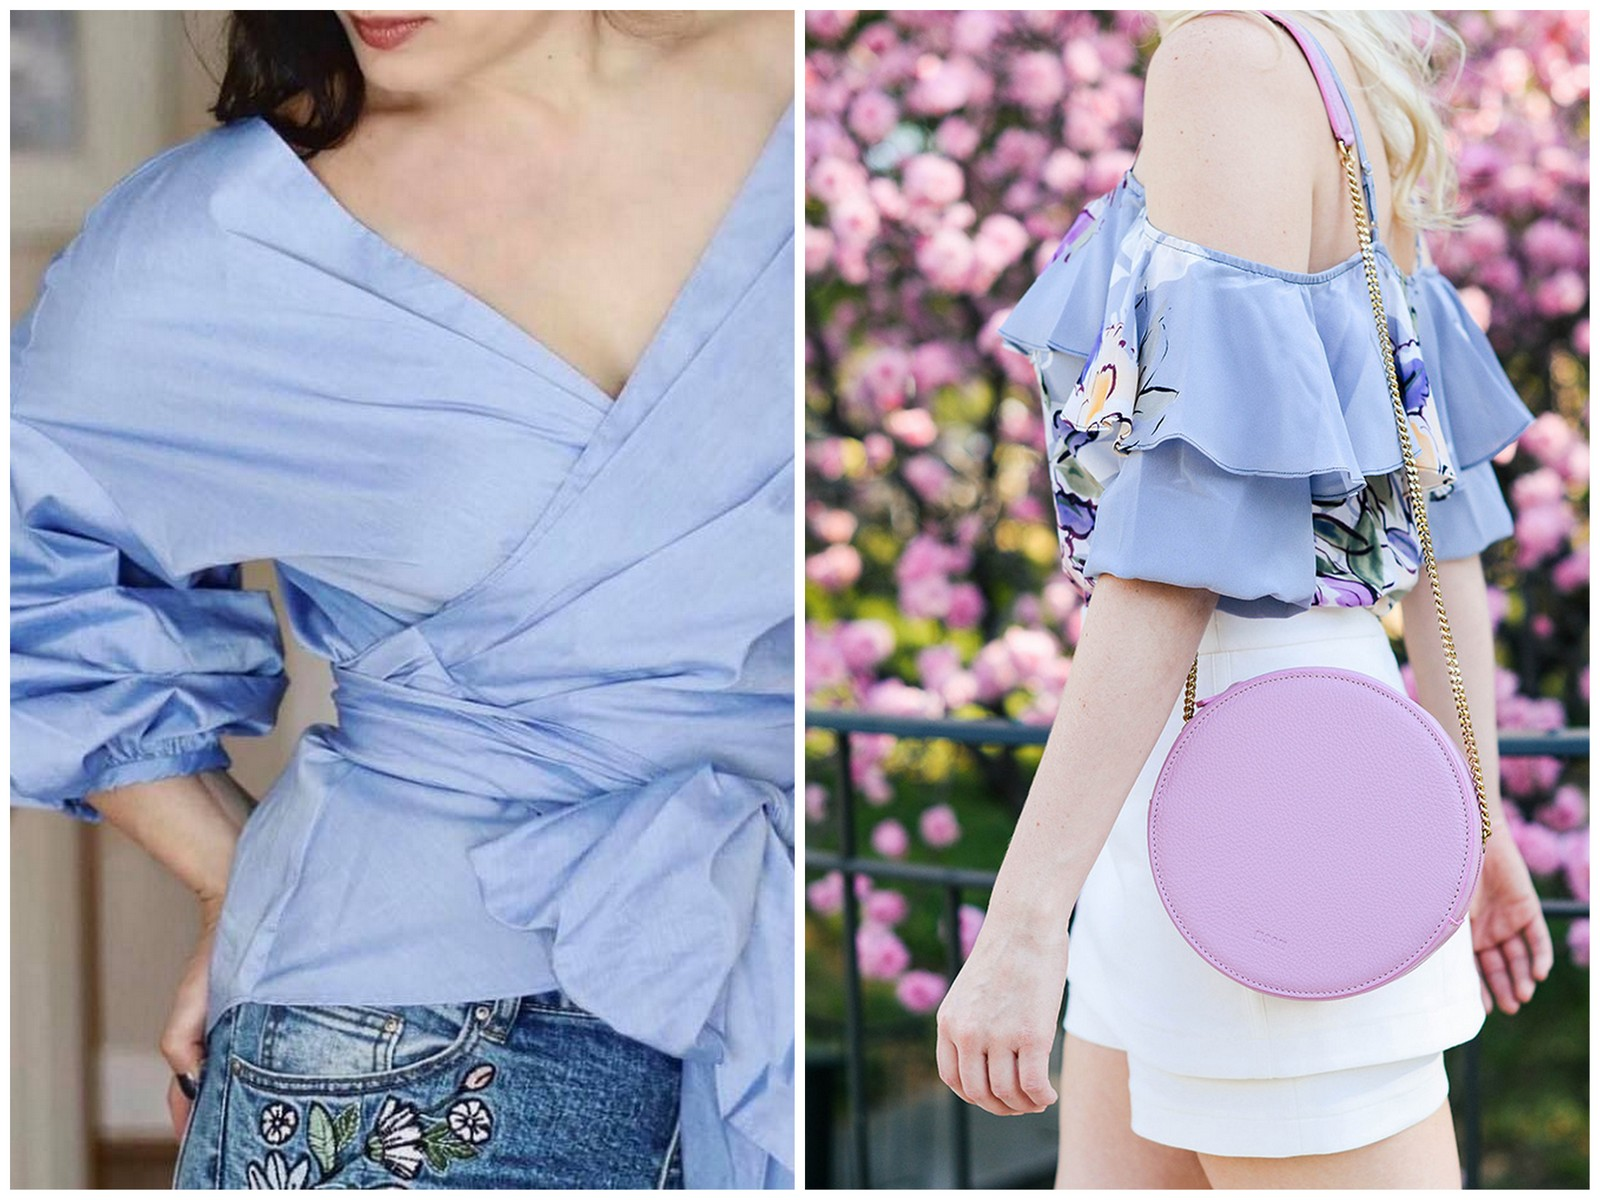 Fashion Inspiration for Off the Shoulder Tops 2017 [CoolChicStyleFashion]